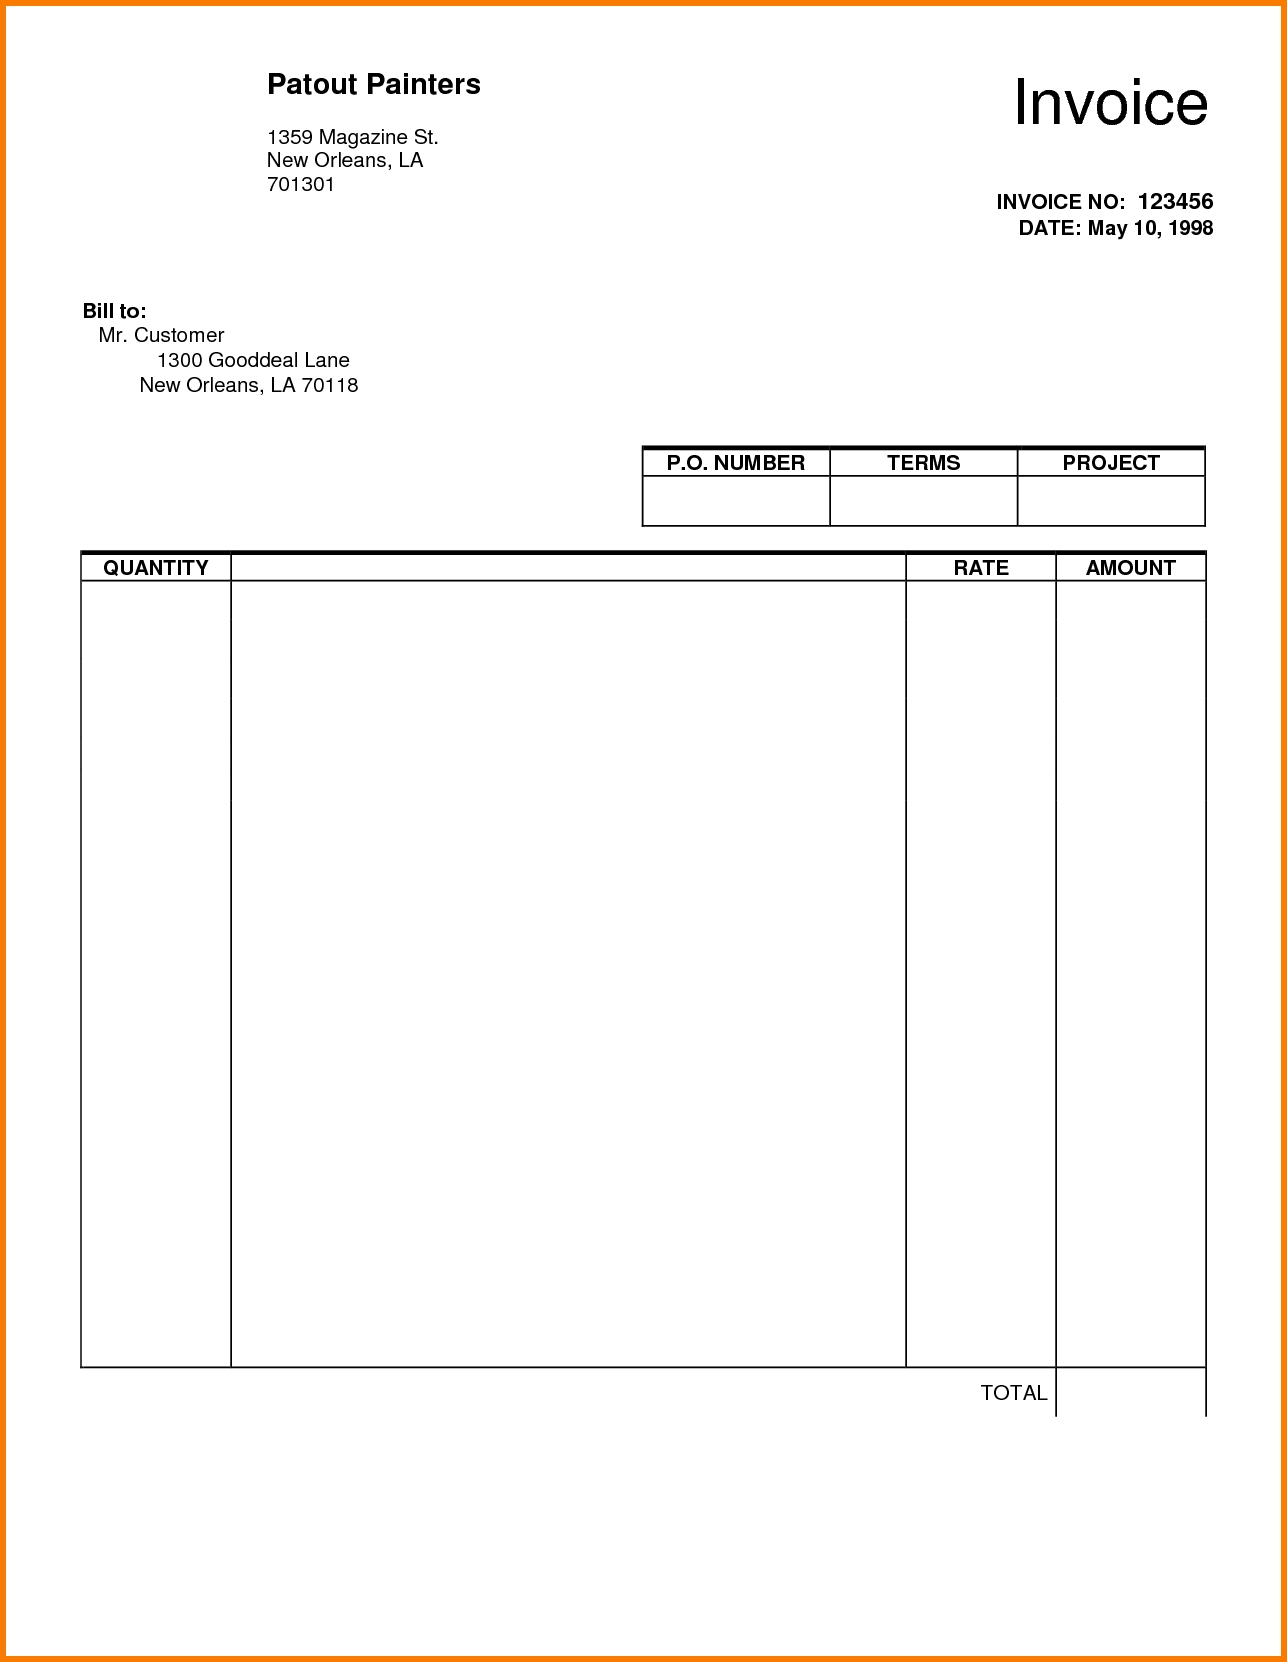 Blank Invoices Templates Invoice Template Ideas - Blank invoice templates